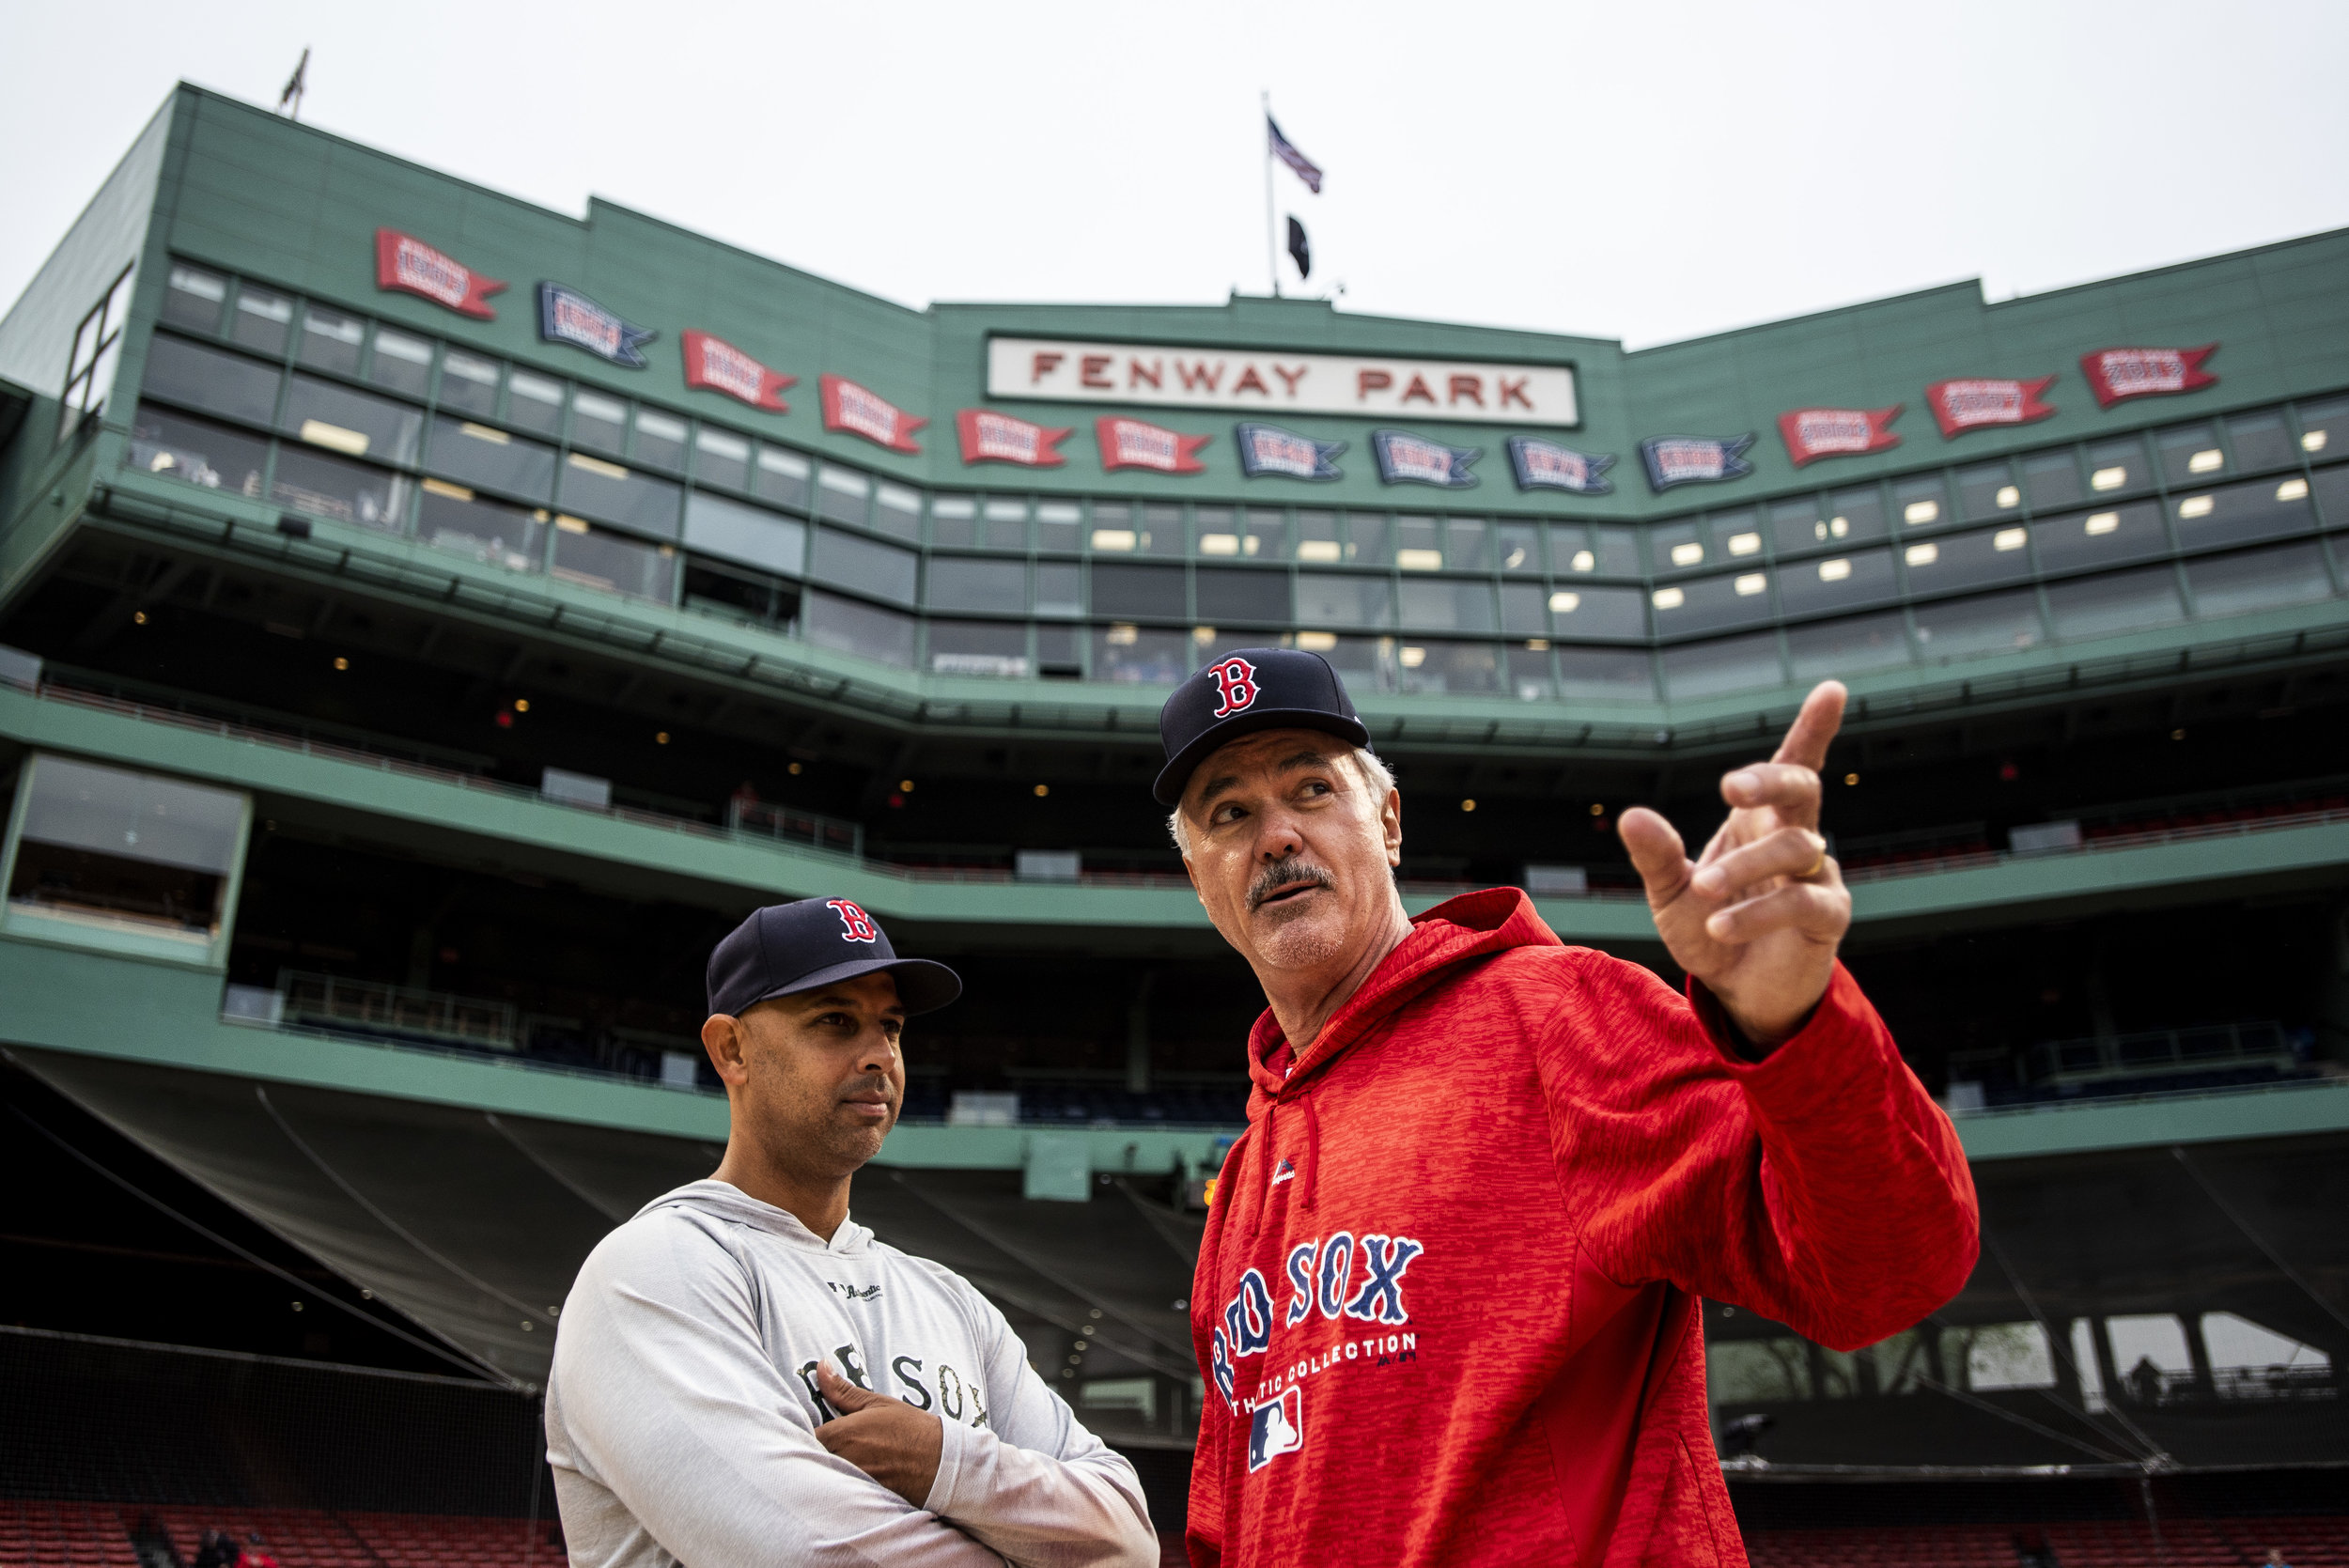 May 27, 2018, Boston, MA: Red Sox Manager Alex Cora talks with Dwight Evans before the Red Sox Alumni Game at Fenway Park in Boston, Massachusetts on Sunday, May 27, 2018. (Photo by Matthew Thomas/Boston Red Sox)